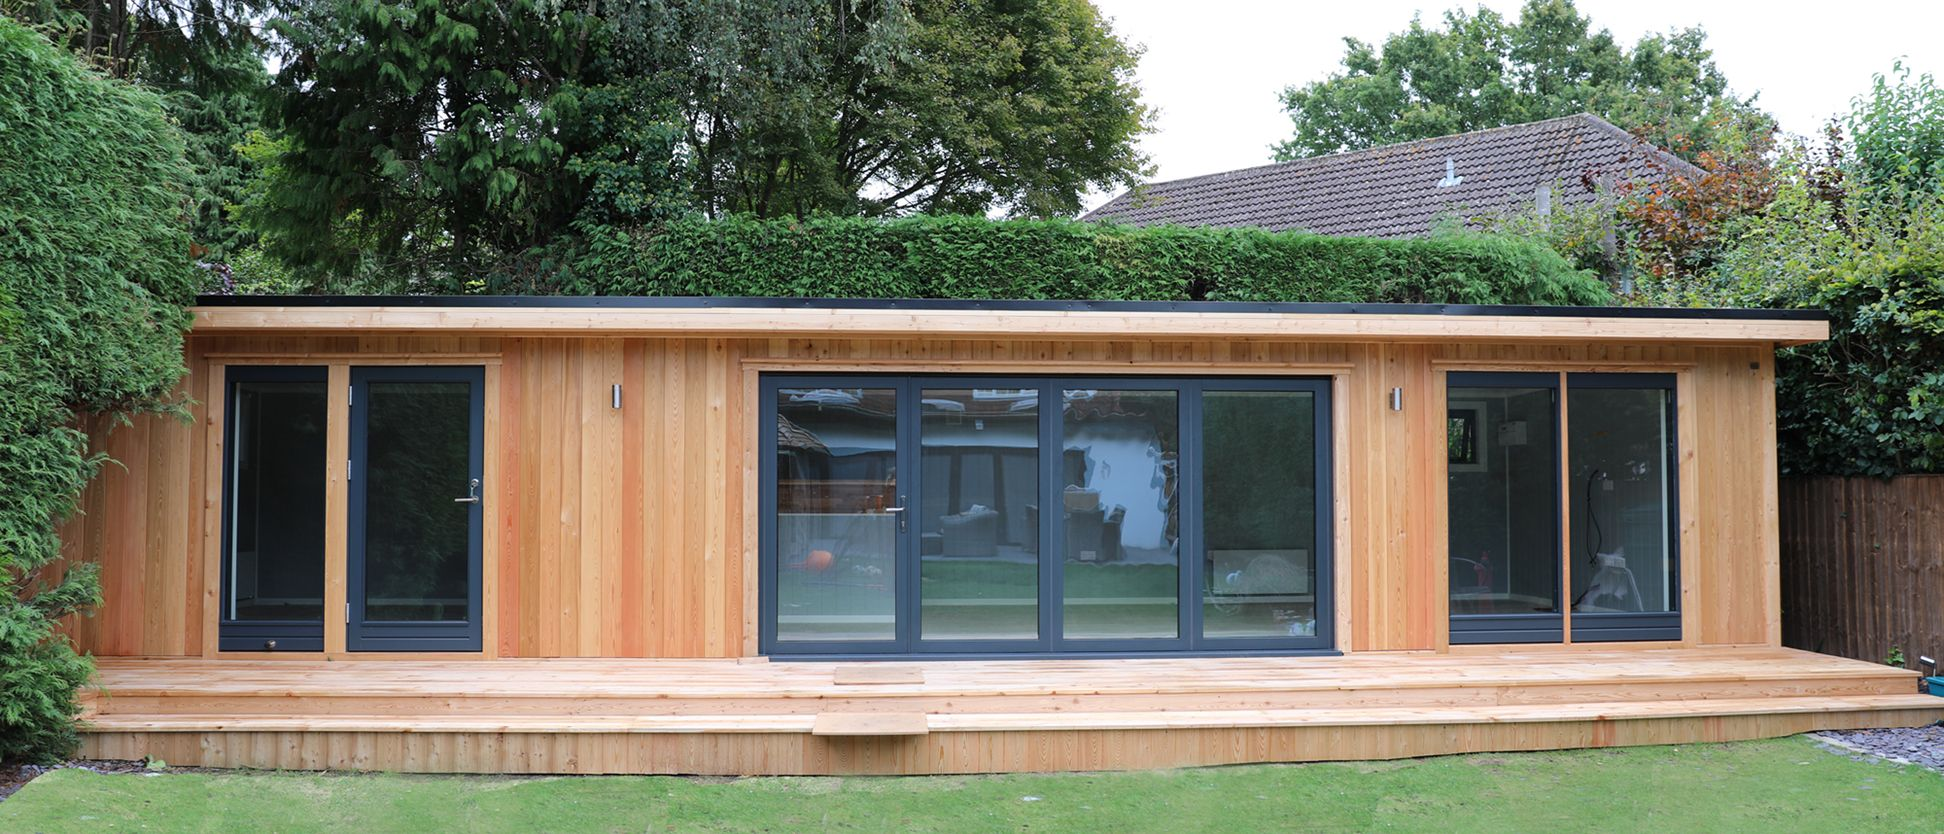 Garden room with two internal rooms